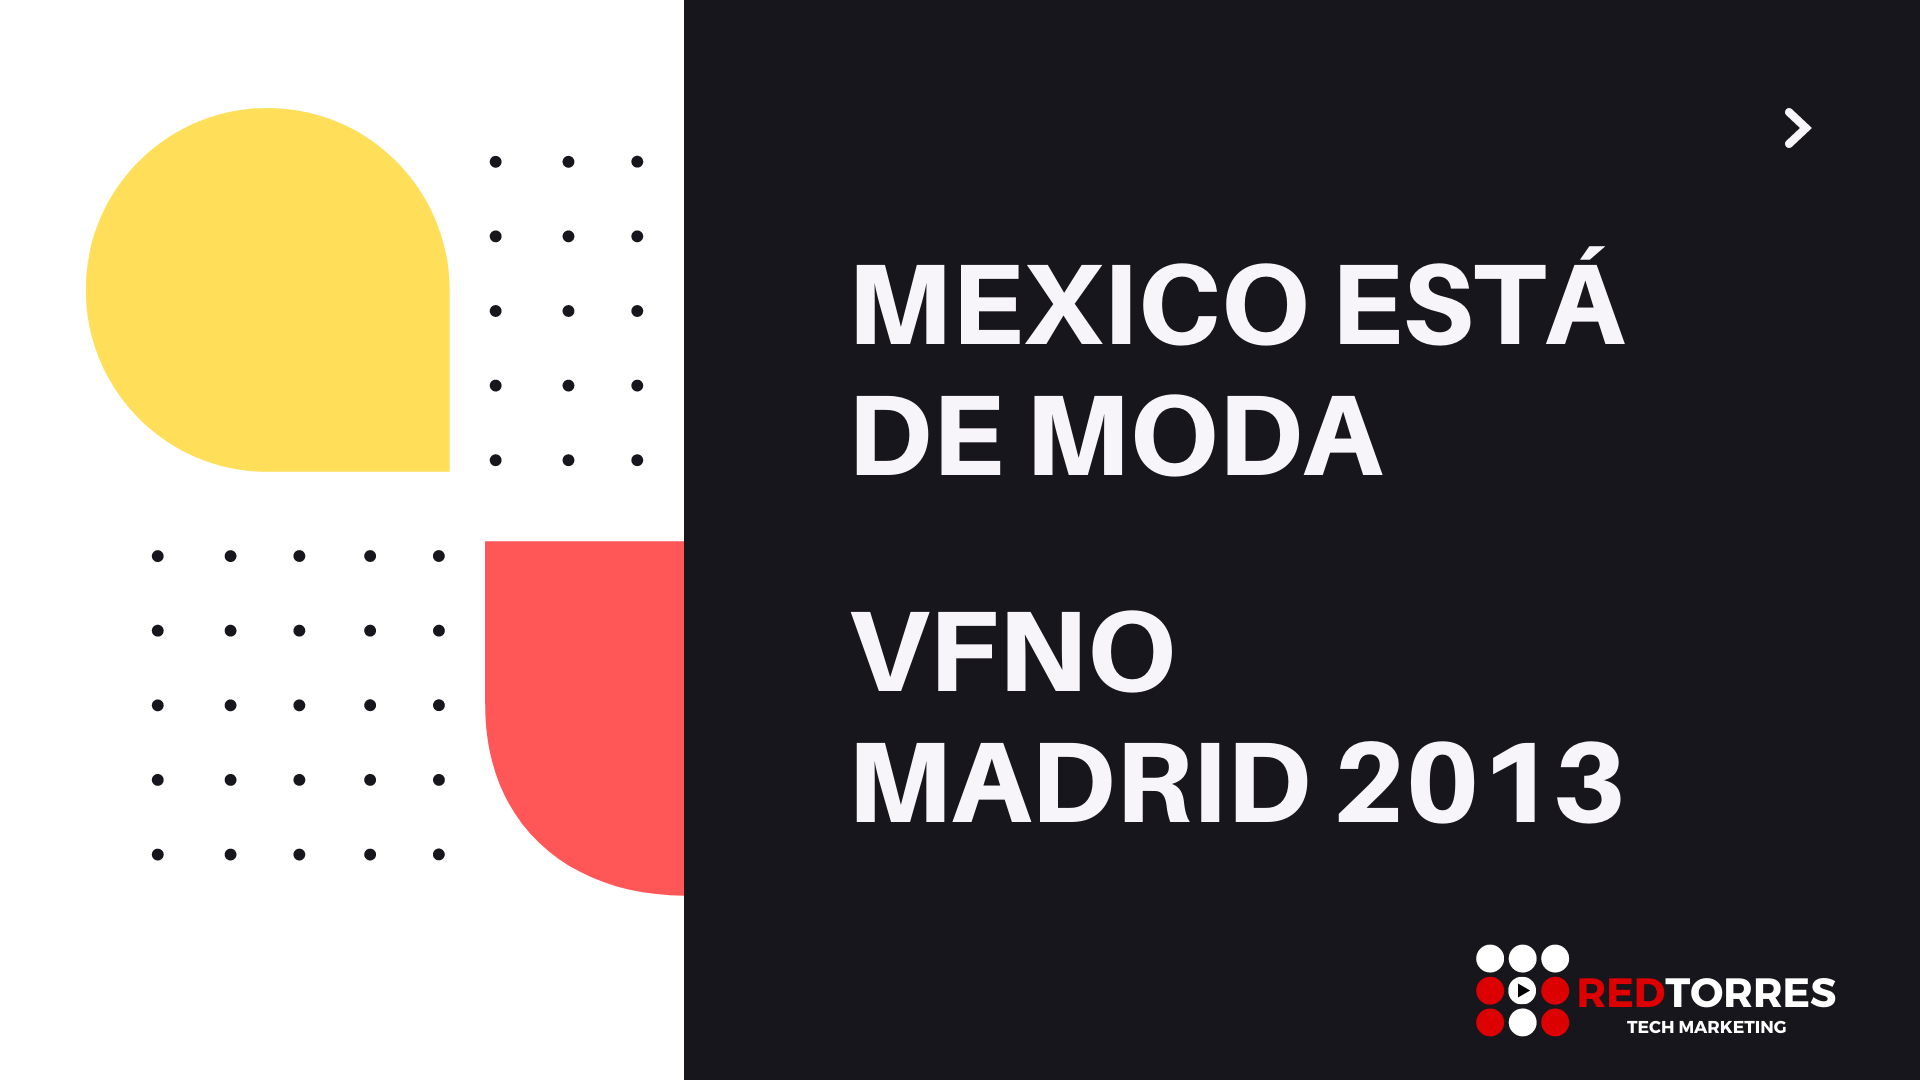 México Está de Moda | Video Eventos Madrid | REDTORRES